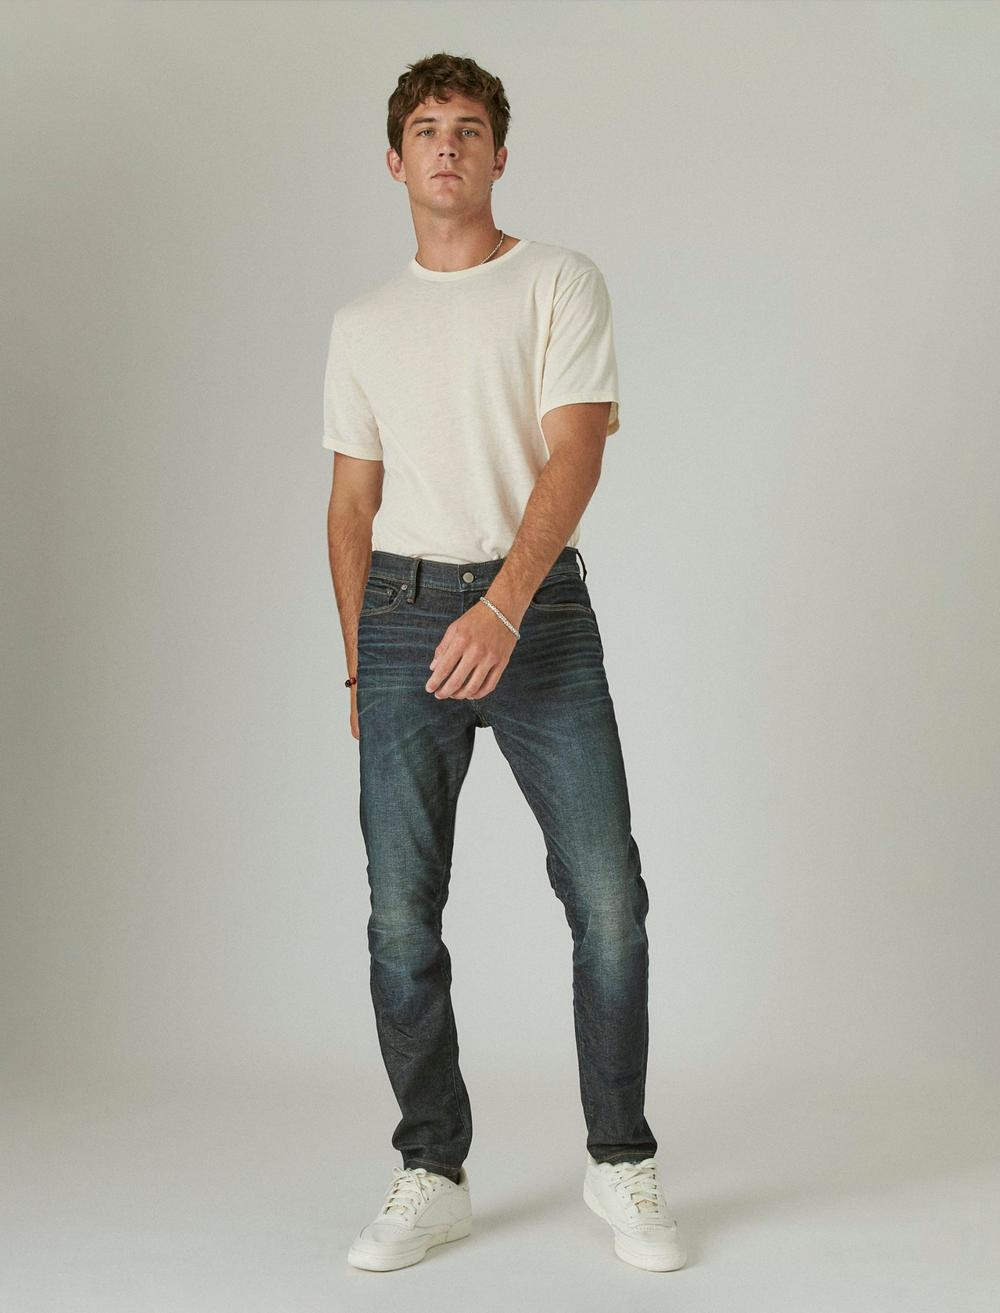 411 ATHLETIC TAPER ADVANCED STRETCH JEAN, image 1